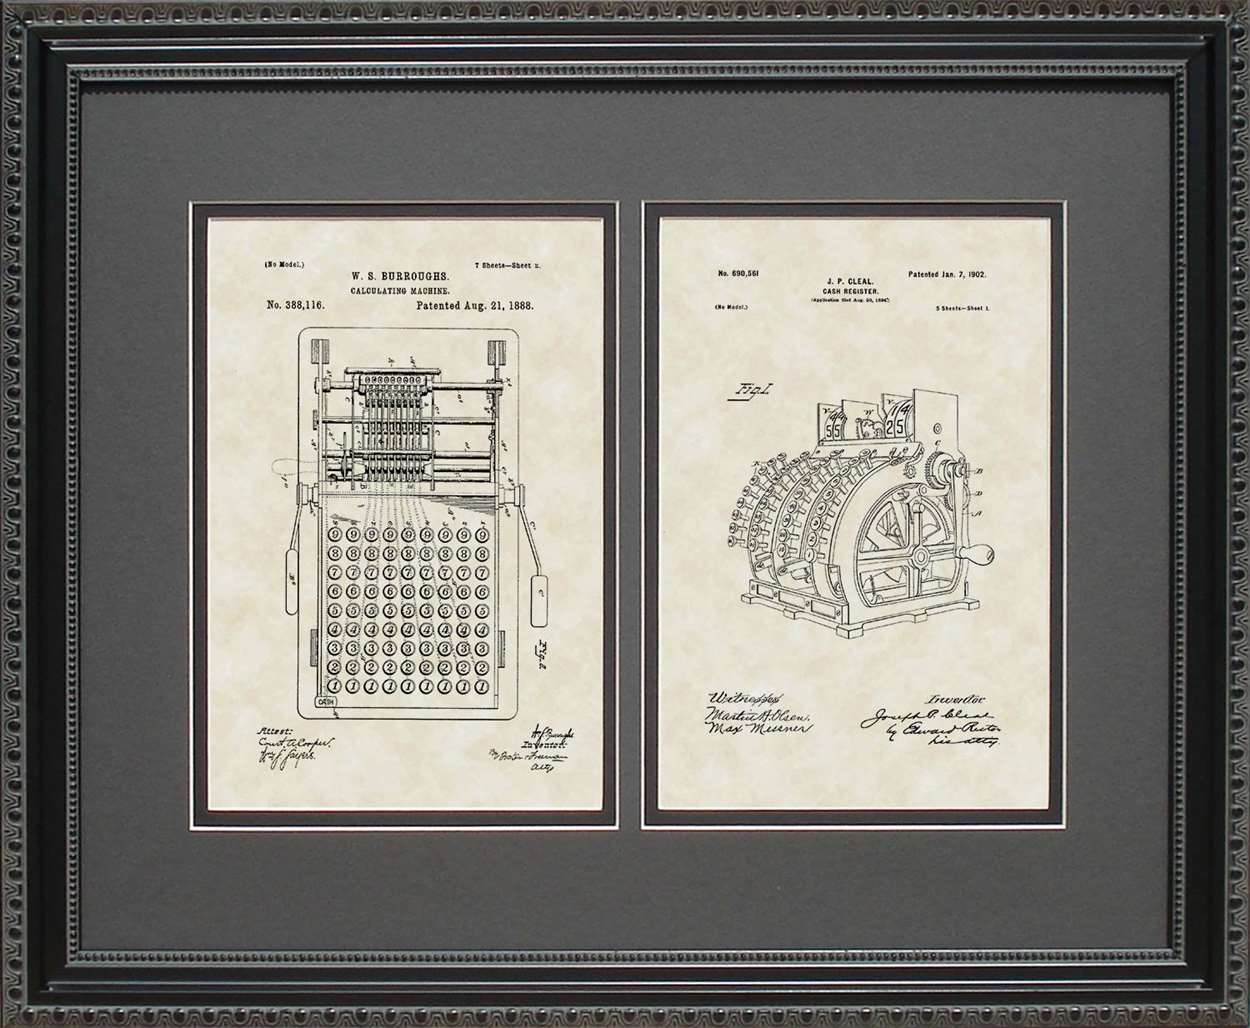 Calculator & Cash Register Patents, 16x20